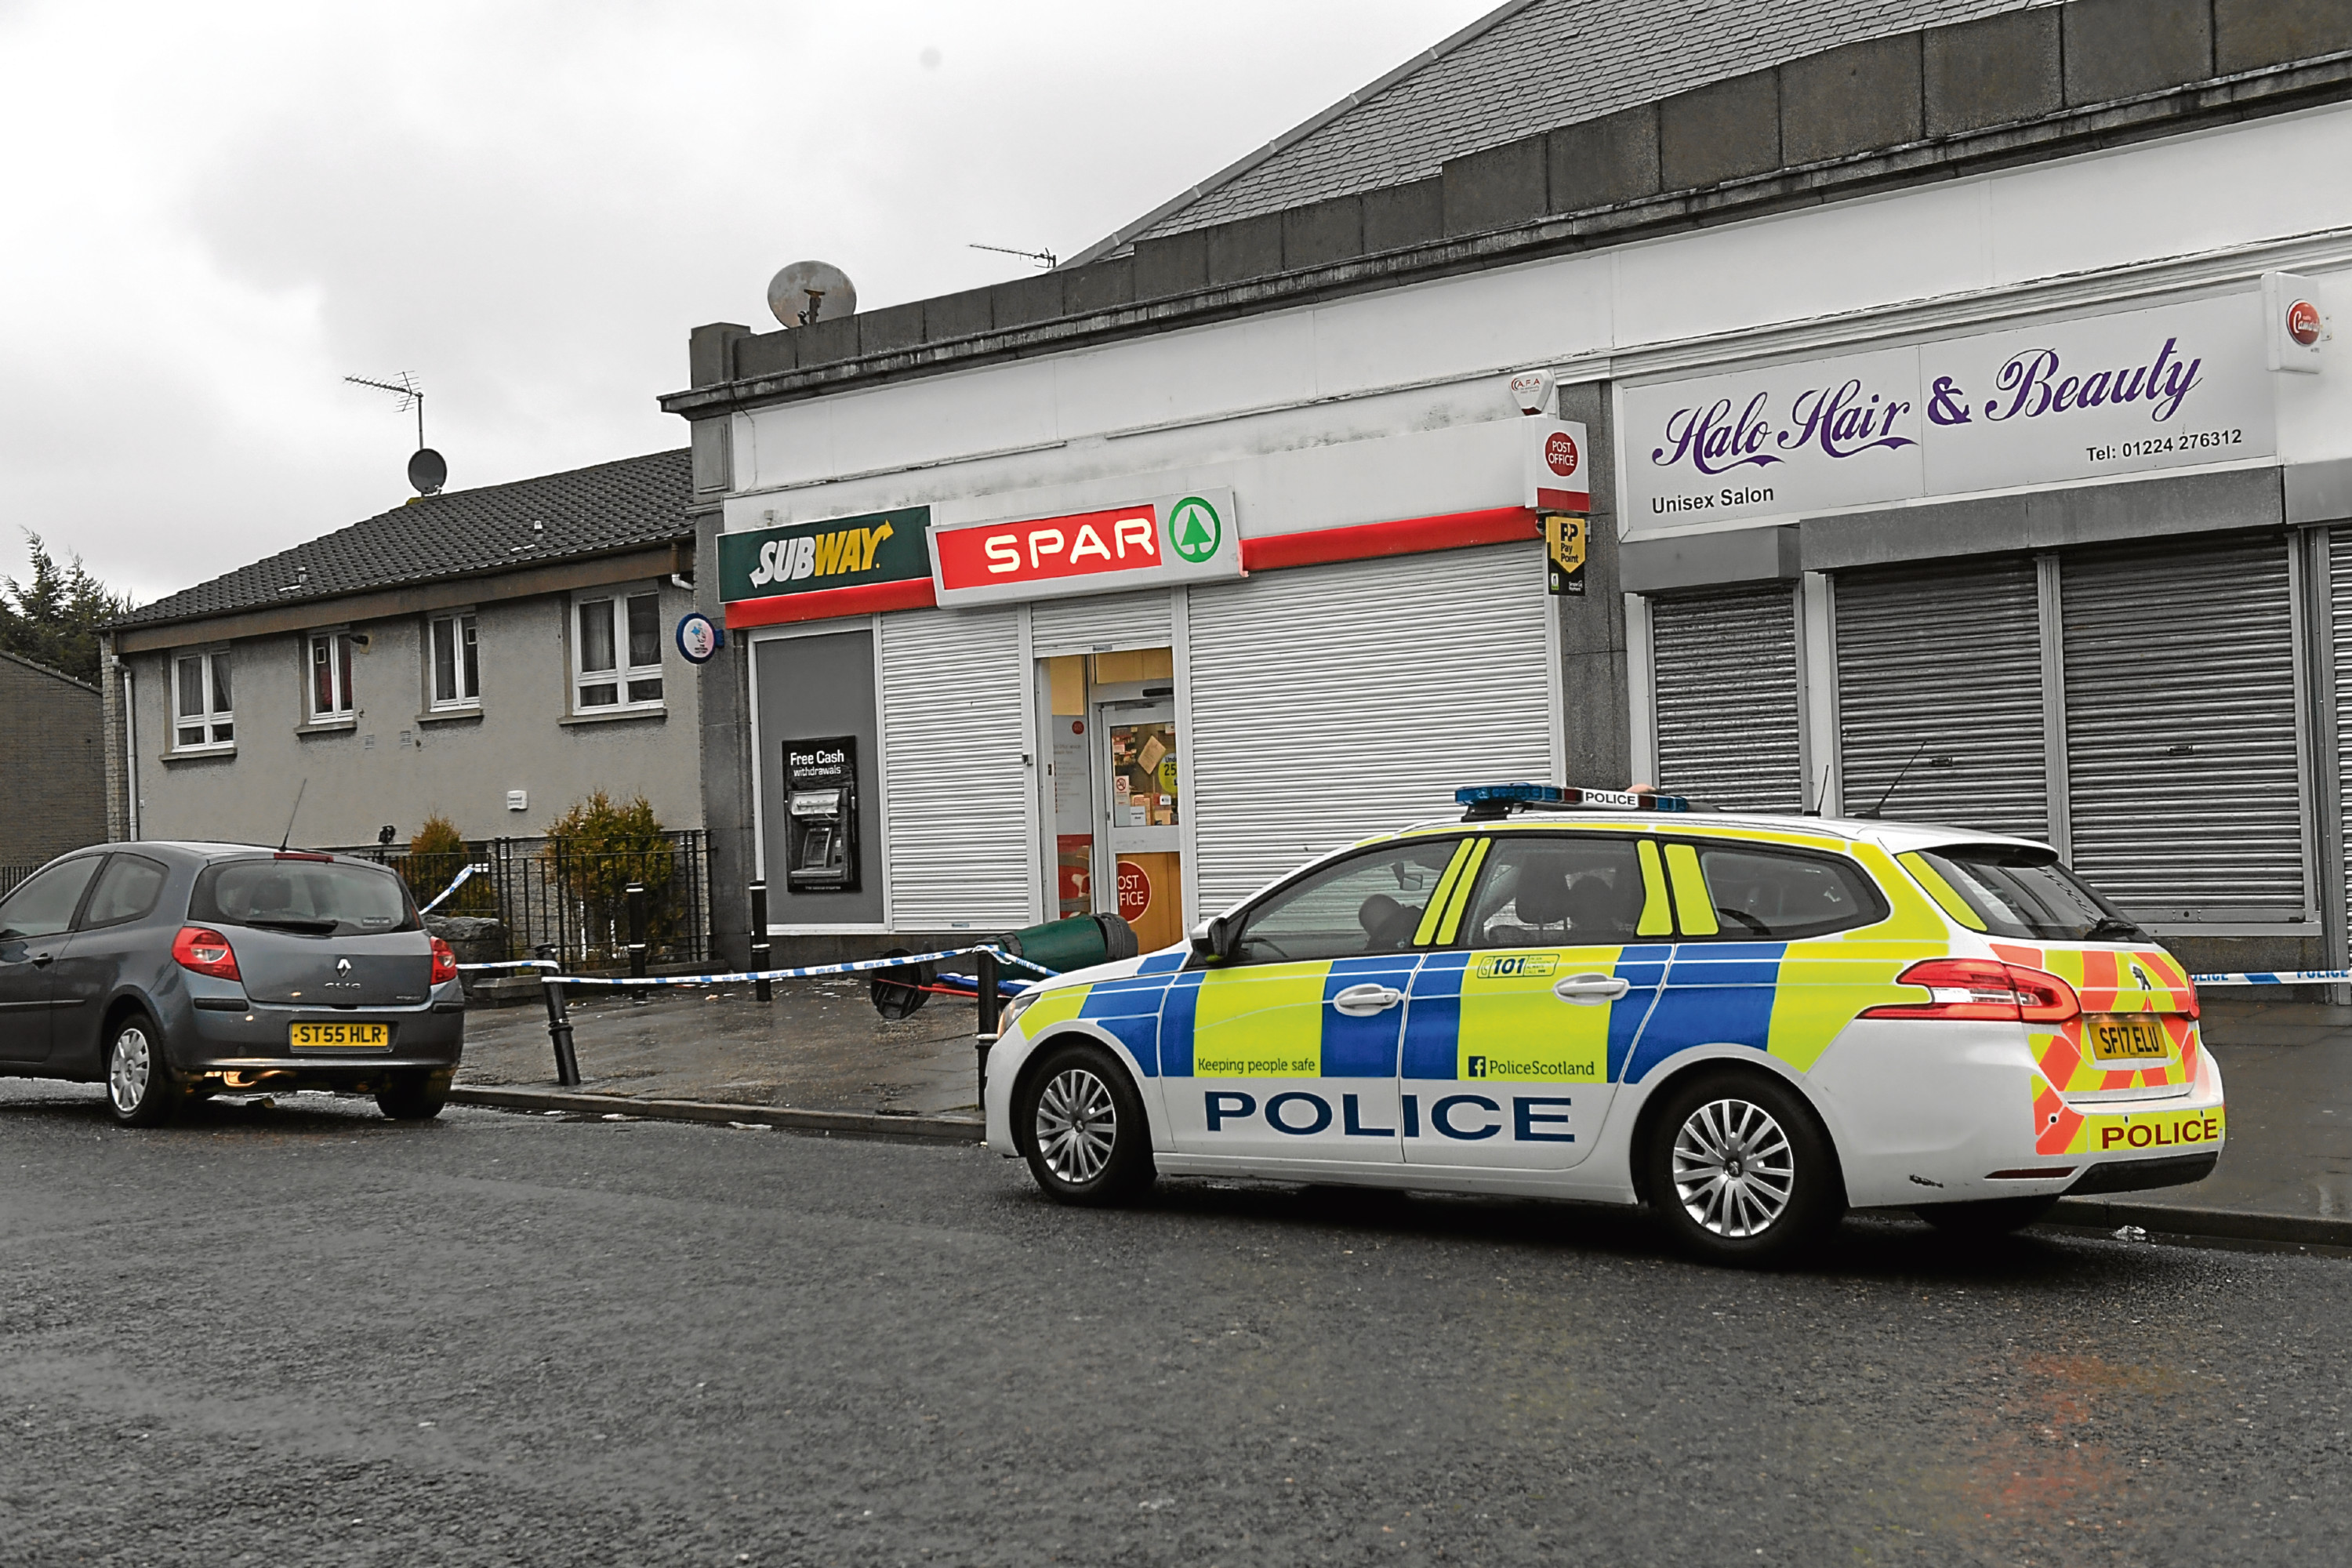 The scene at Spar on Clifton Road